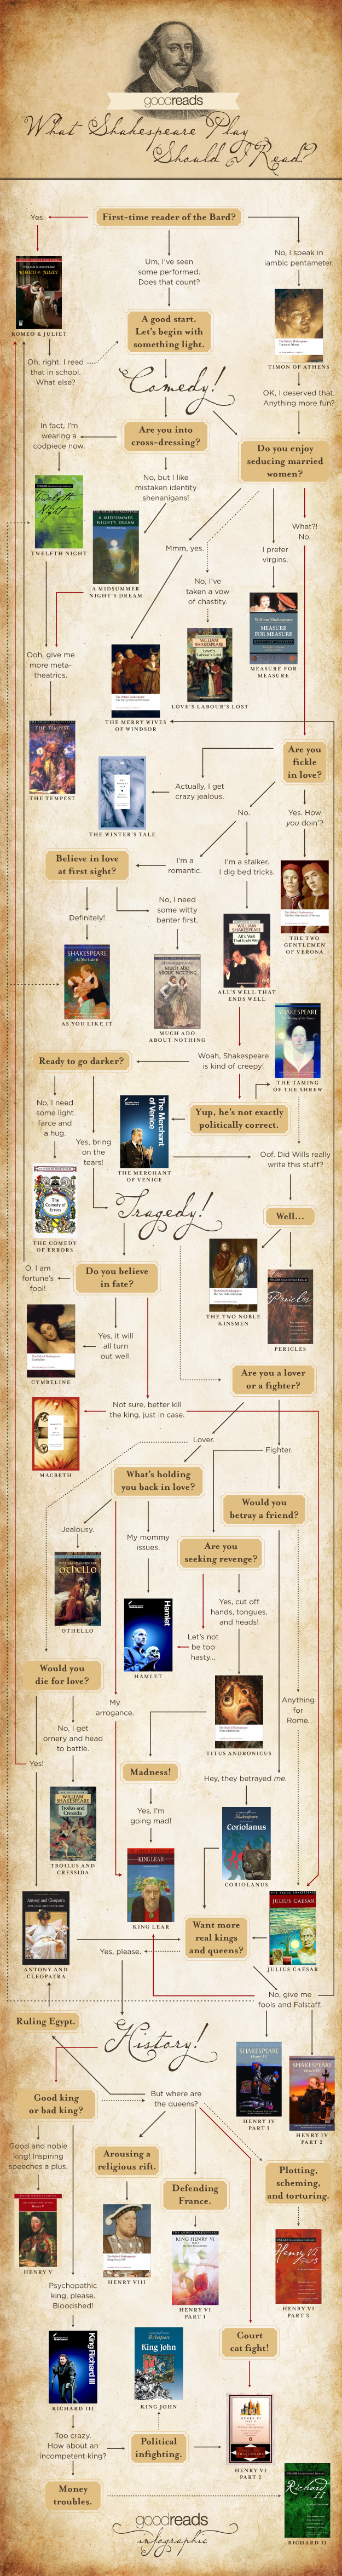 Shakespeare Play Choice Infographic